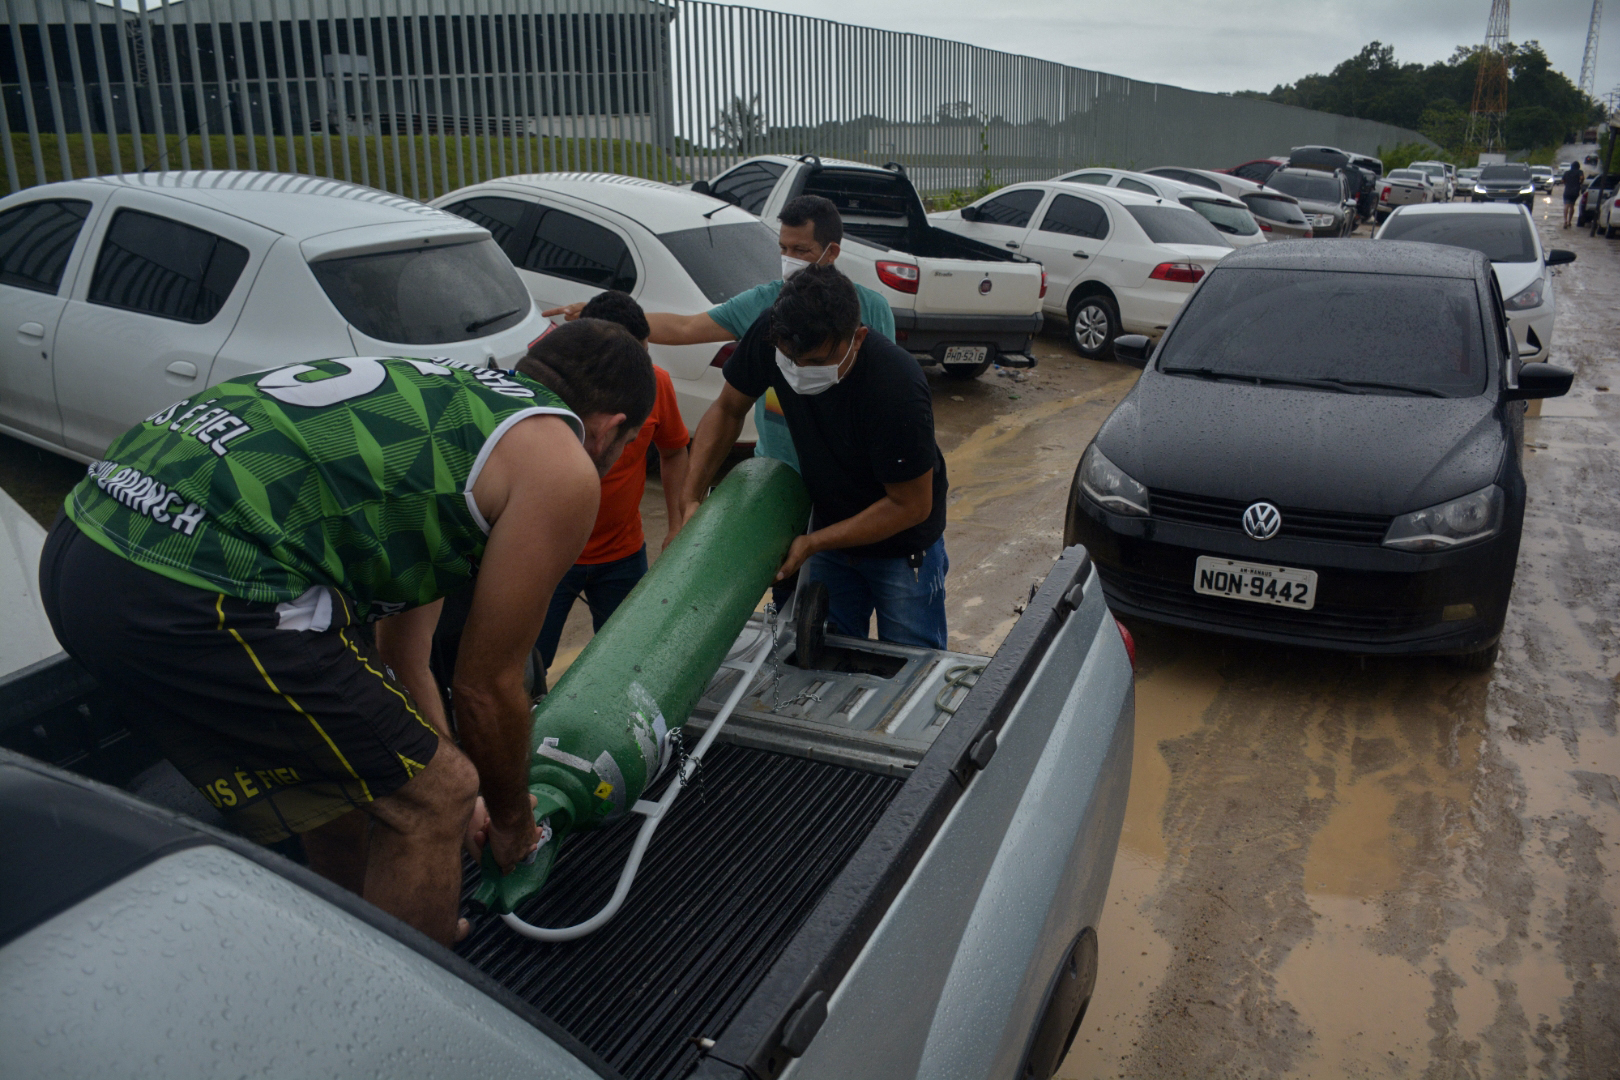 Relatives of patients infected with Covid-19 leave after queueing for long hours to refill their oxygen tanks at the Carboxi company in Manaus, Amazonas state, Brazil, on Tuesday.